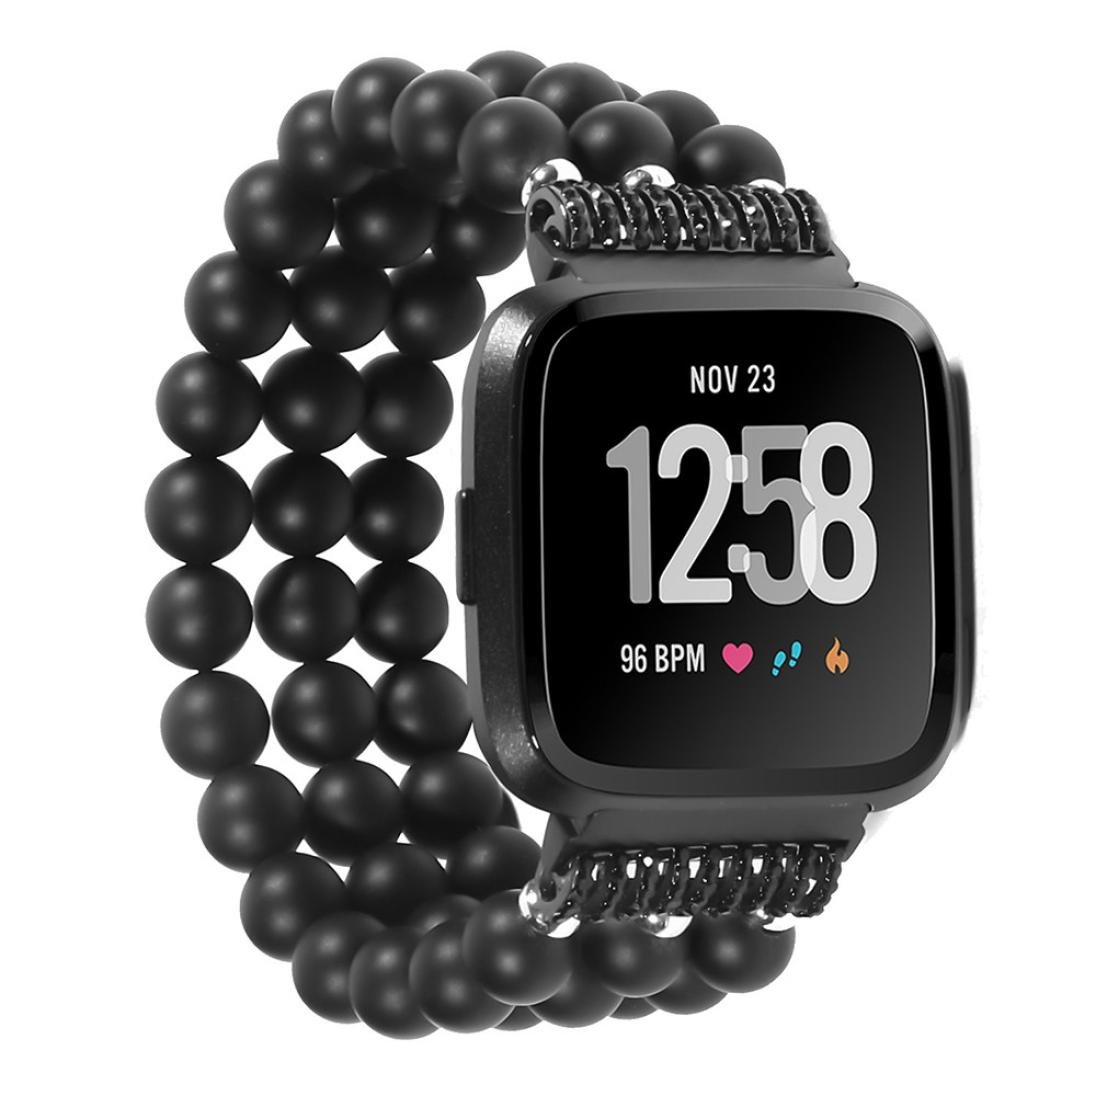 AutumnFall Bands for Fitbit Versa, Crystal Three Beads Round Beads Watch Band Wrist Strap For Fitbit Versa (Black)